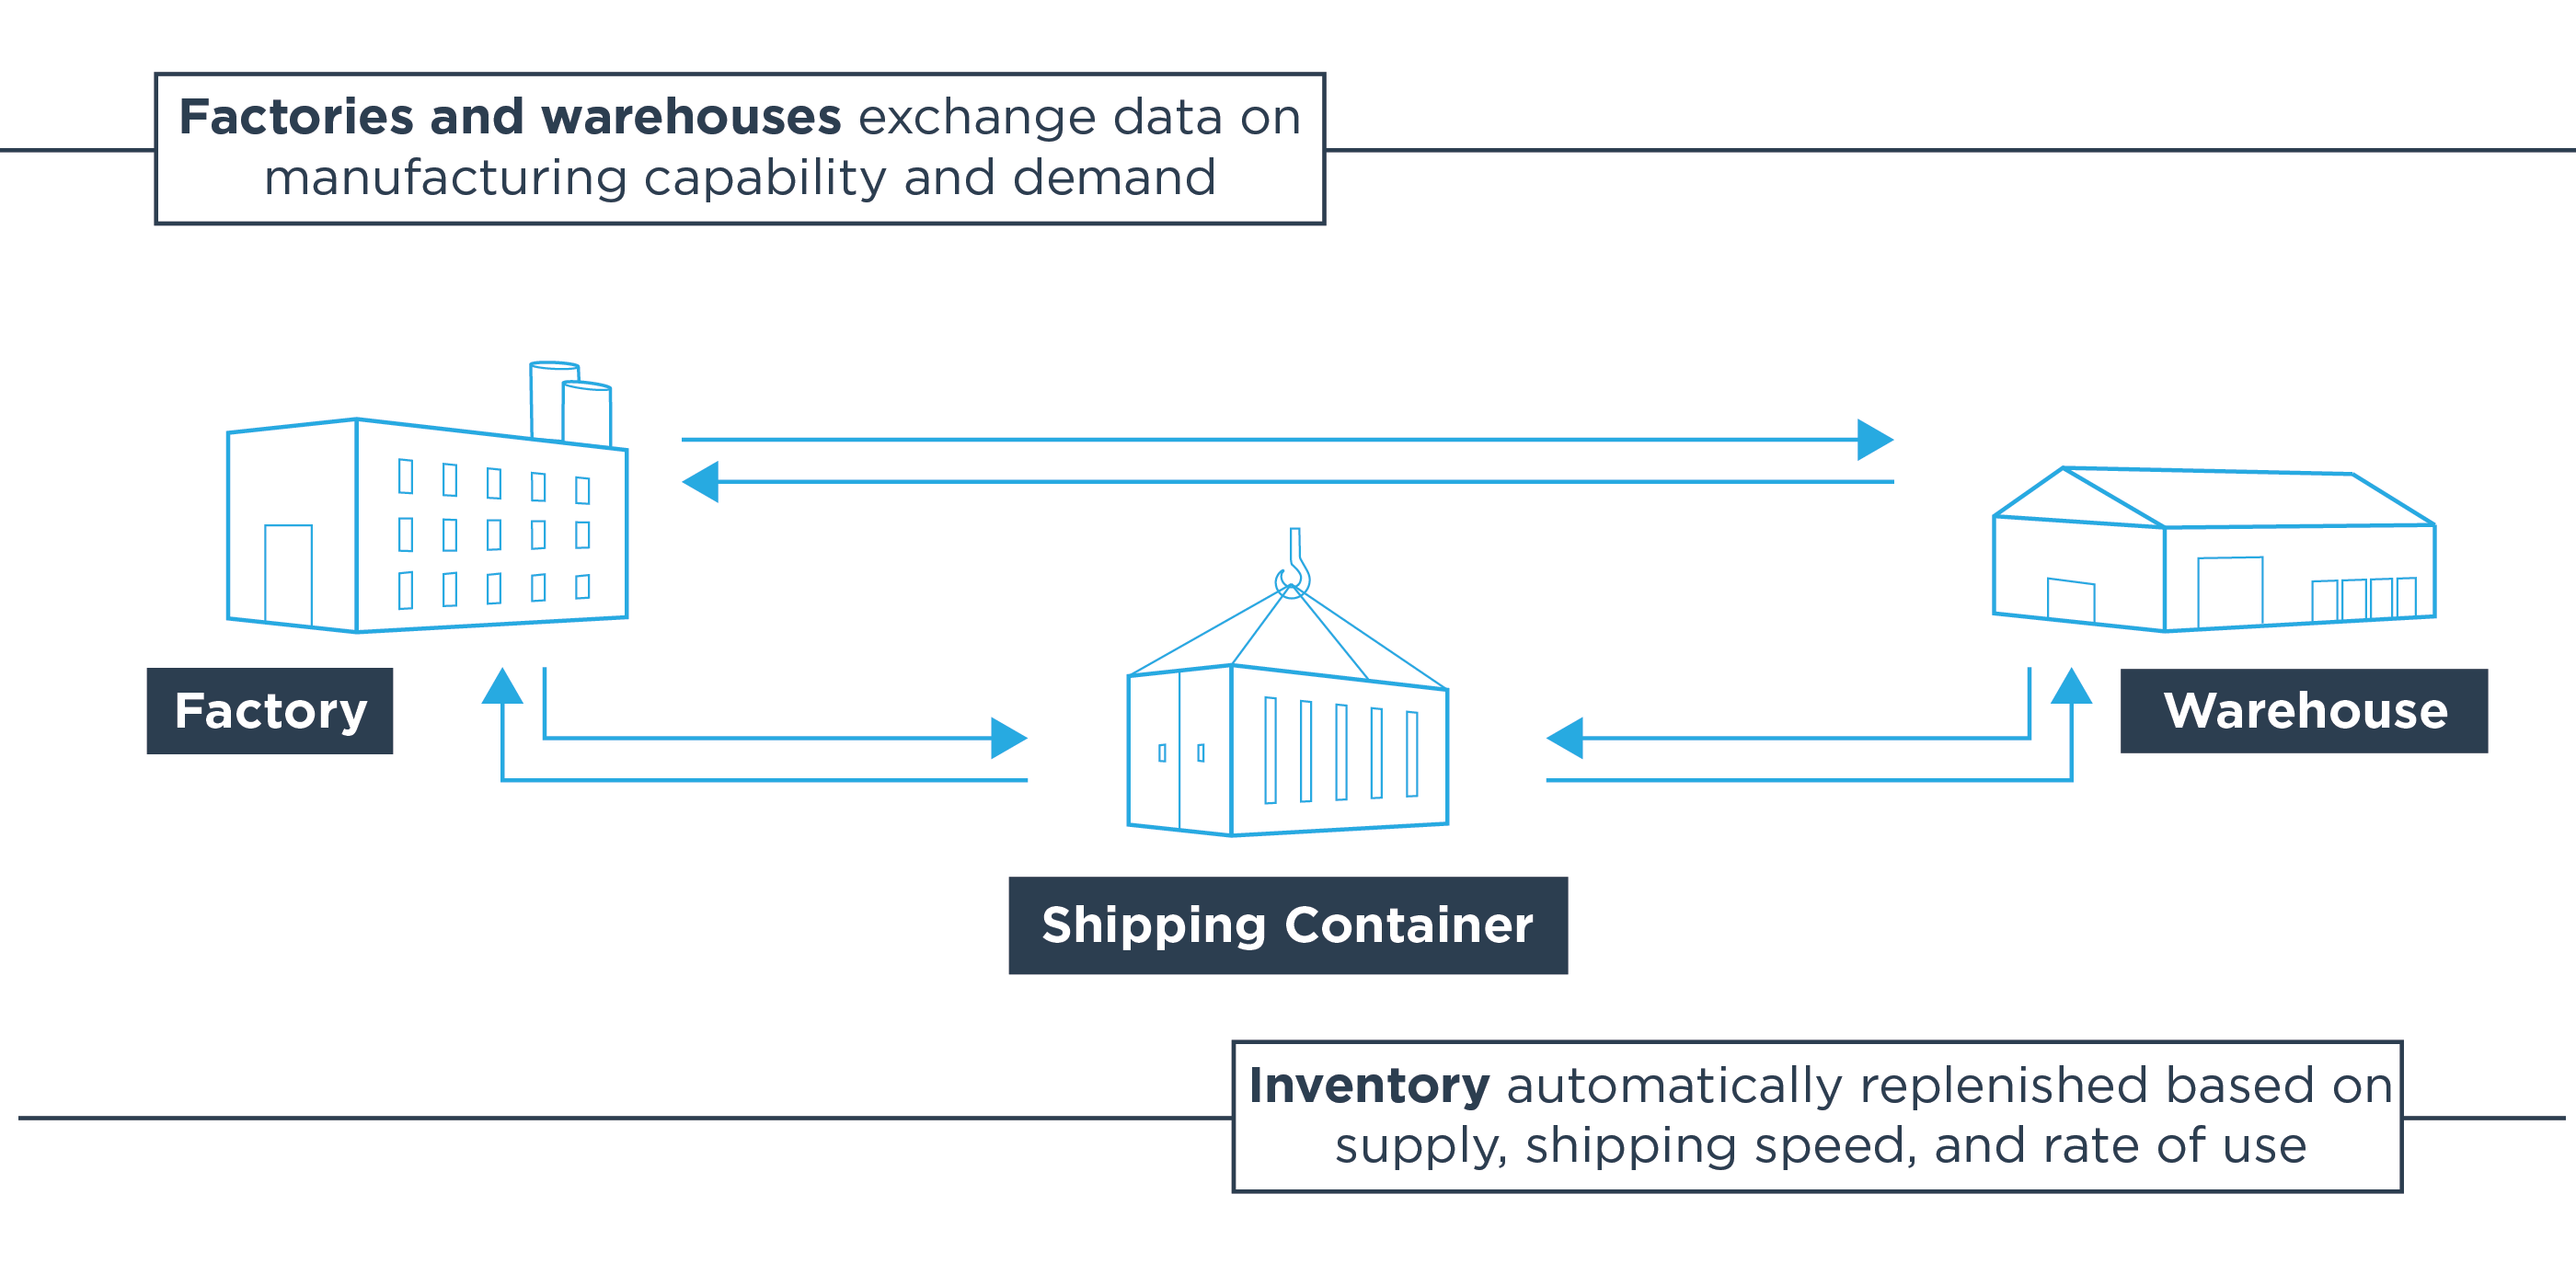 Factories and warehouses exchange data on manufacturing capability and demand. Inventory automatically replenished based on supply, shipping speed, and rate of use.